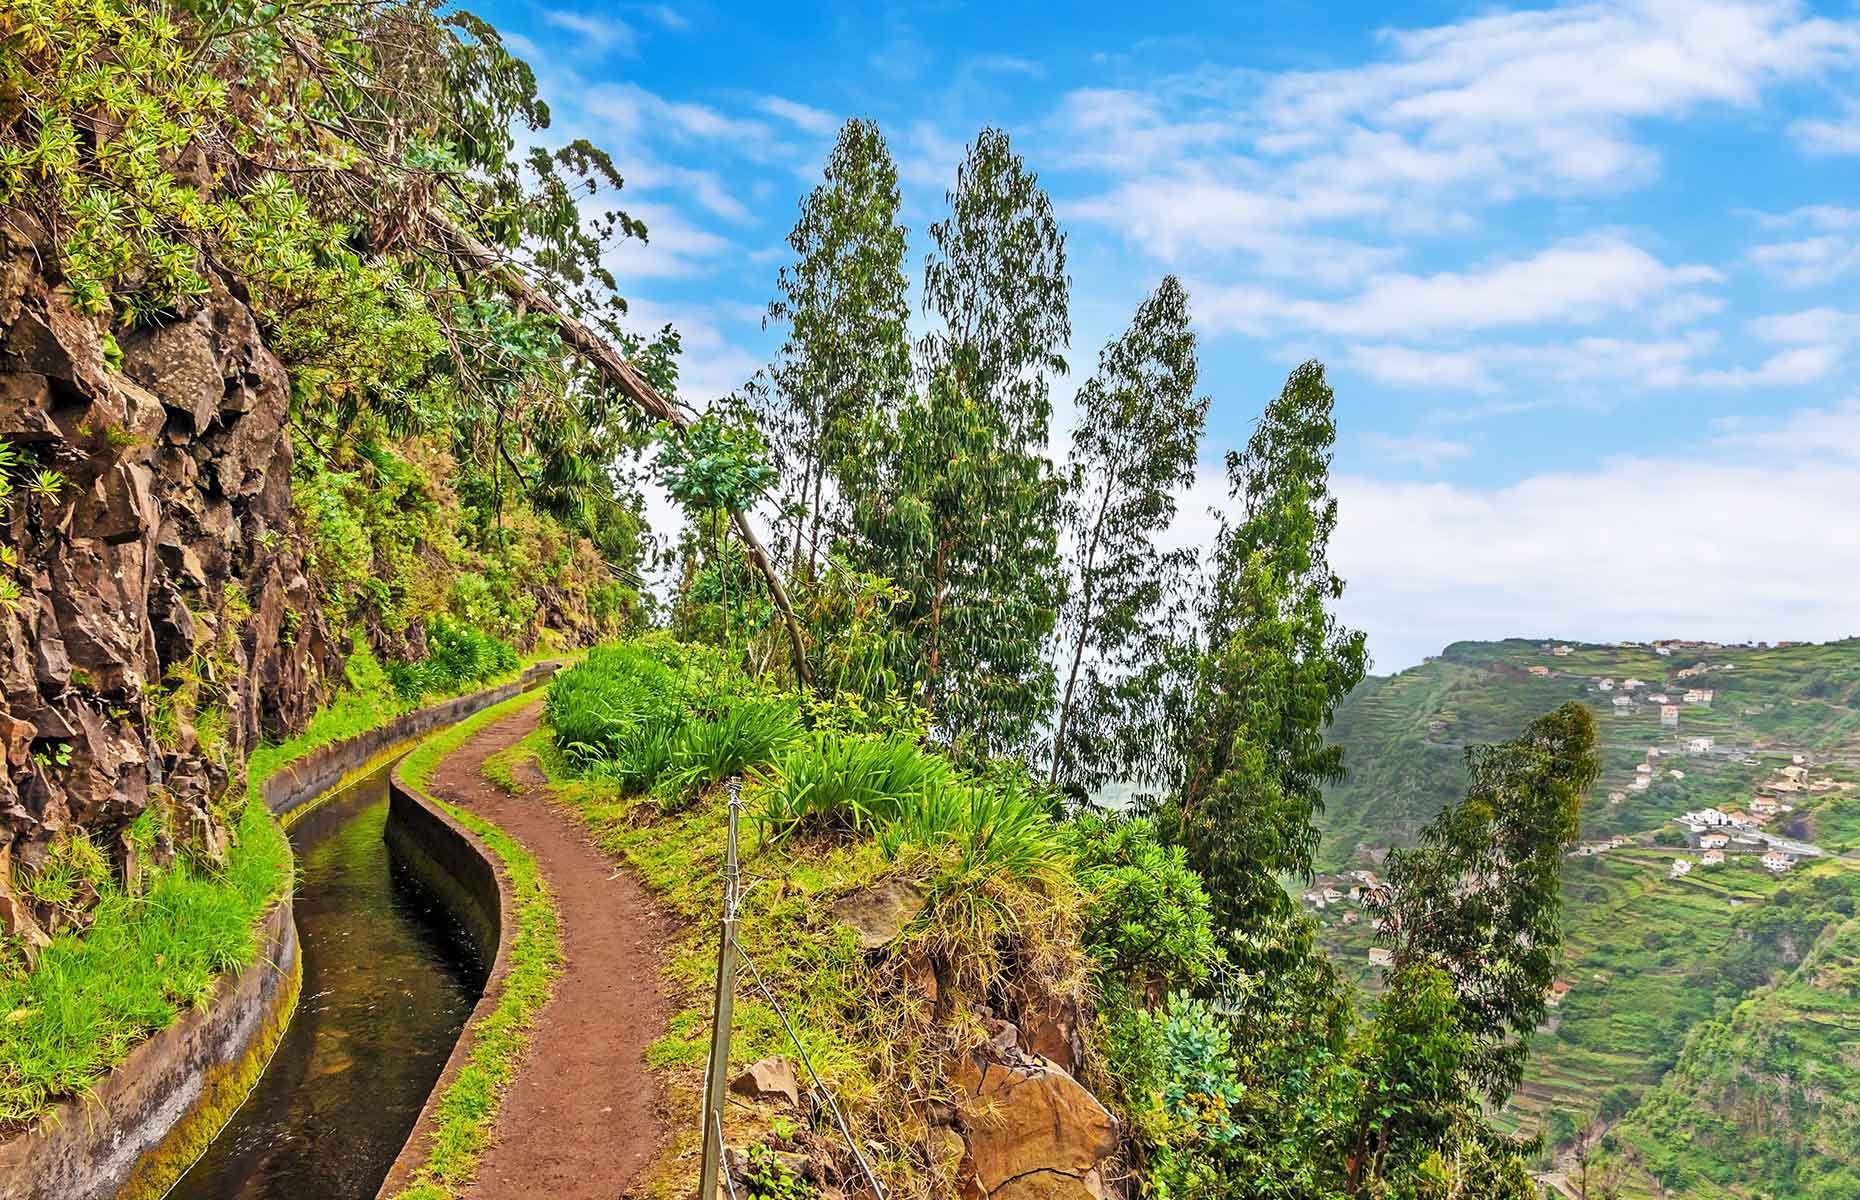 Hiking along irrigation channel (Levada) in Madeira (Image: aldorado/Shutterstock)